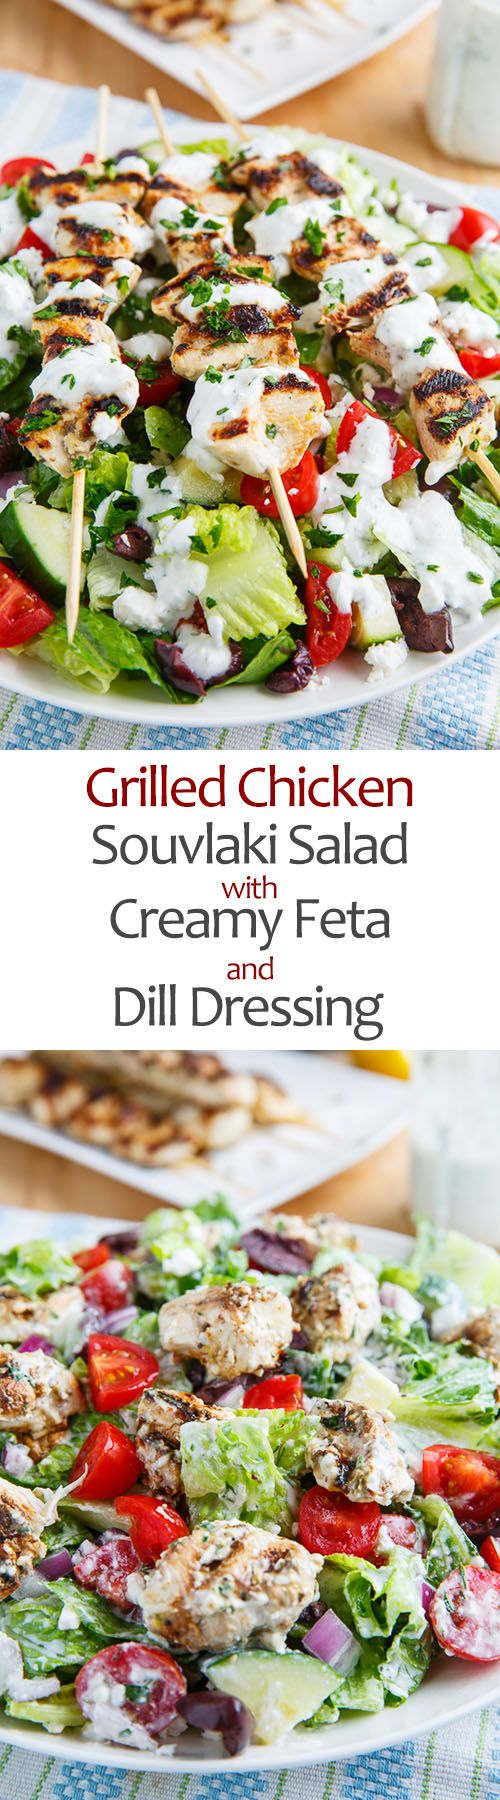 Grilled Chicken Souvlaki Salad with Creamy Feta and Dill Dressing ...